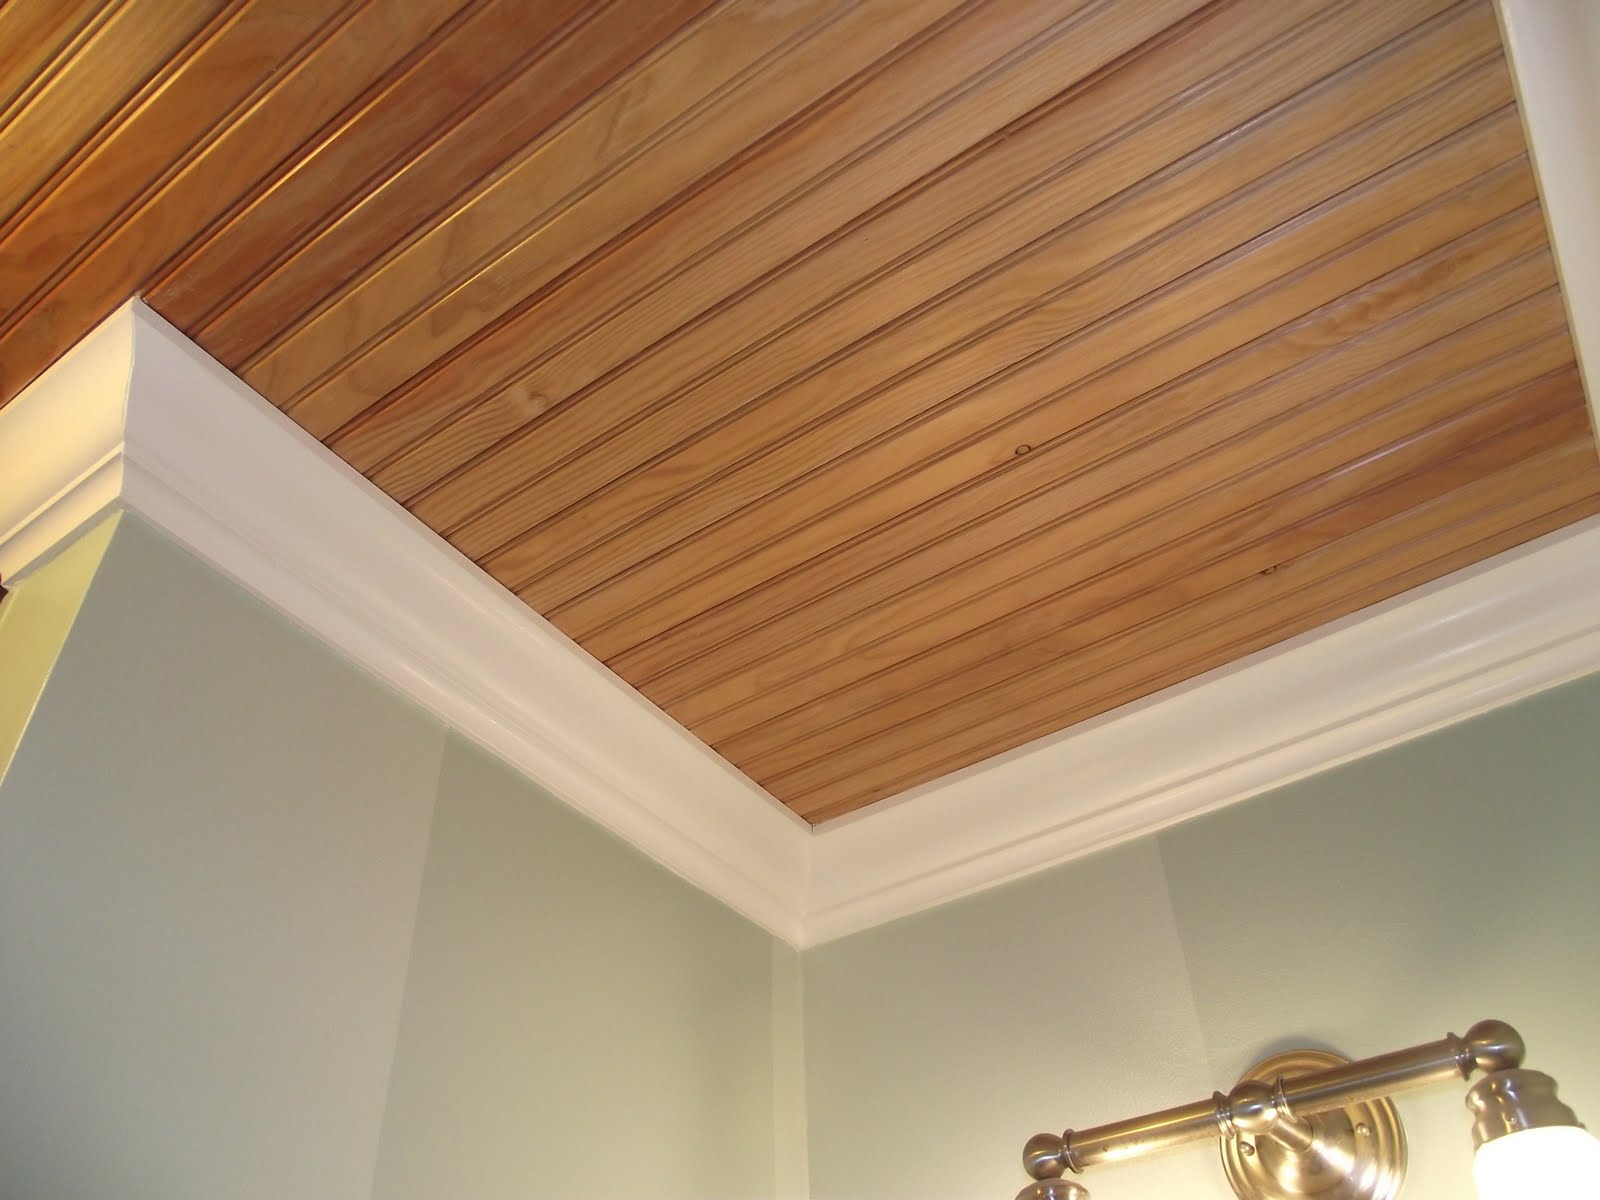 Tongue and groove ceiling plus tongue and groove wall boards plus exterior tongue and groove boards